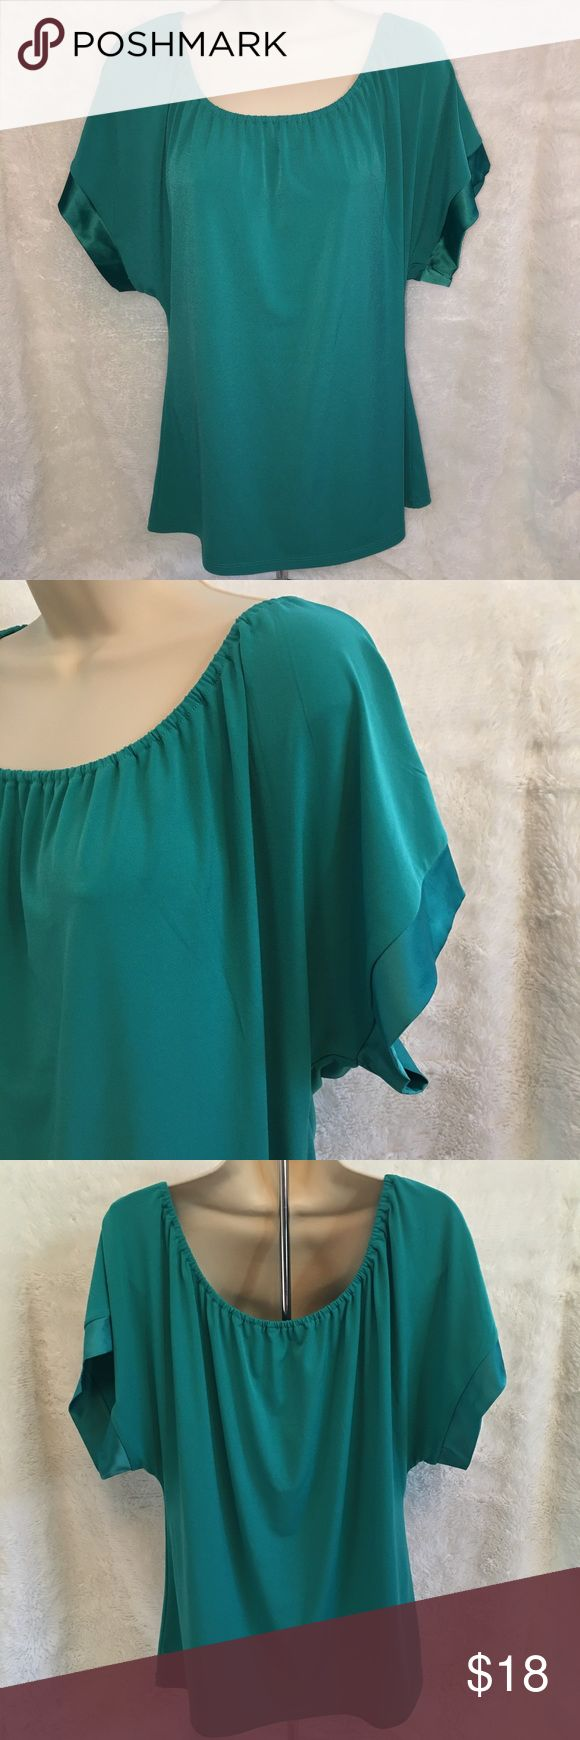 Express Blouse Nice scoop neck top in EUC. Satin trim on the sleeve. Made from a polyester/spandex blend. Express Tops Blouses